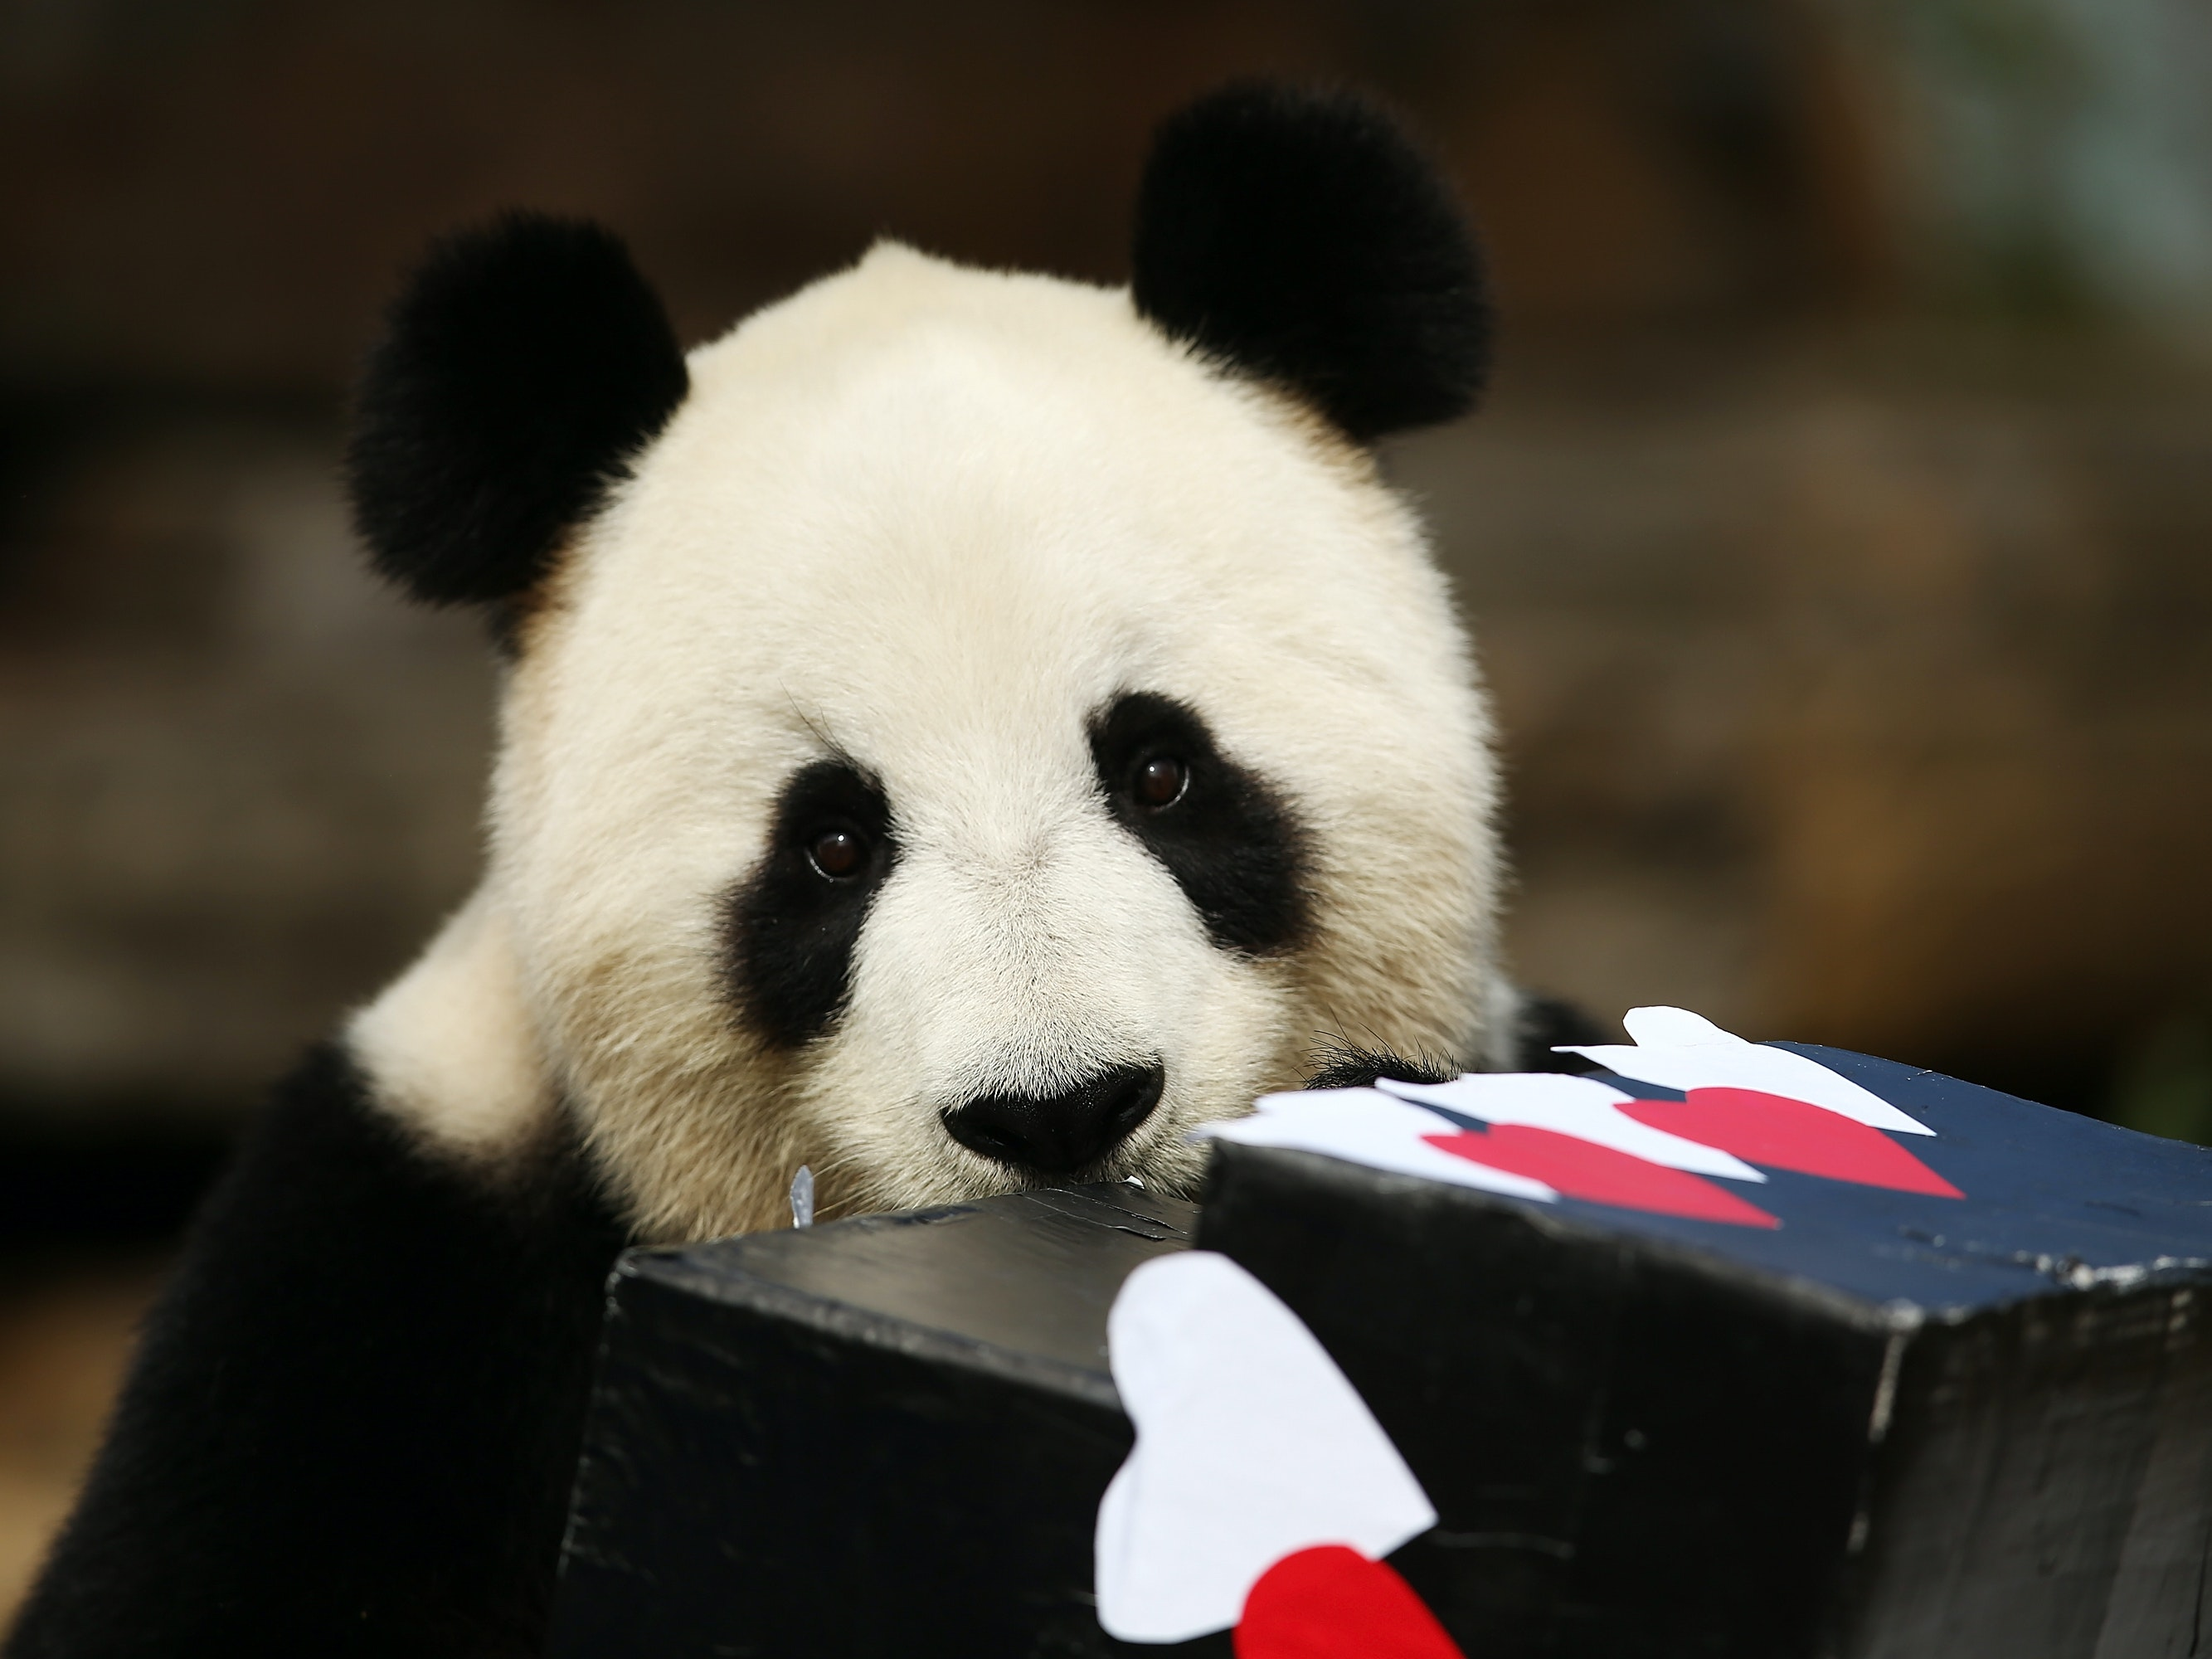 ADELAIDE, AUSTRALIA - AUGUST 23:  Fu Ni the giant panda is treated to specially prepared panda treats for her birthday at the Adelaide Zoo on August 23, 2015 in Adelaide, Australia. Fu Ni the giant panda is turning nine years old.  (Photo by Morne de Klerk/Getty Images)